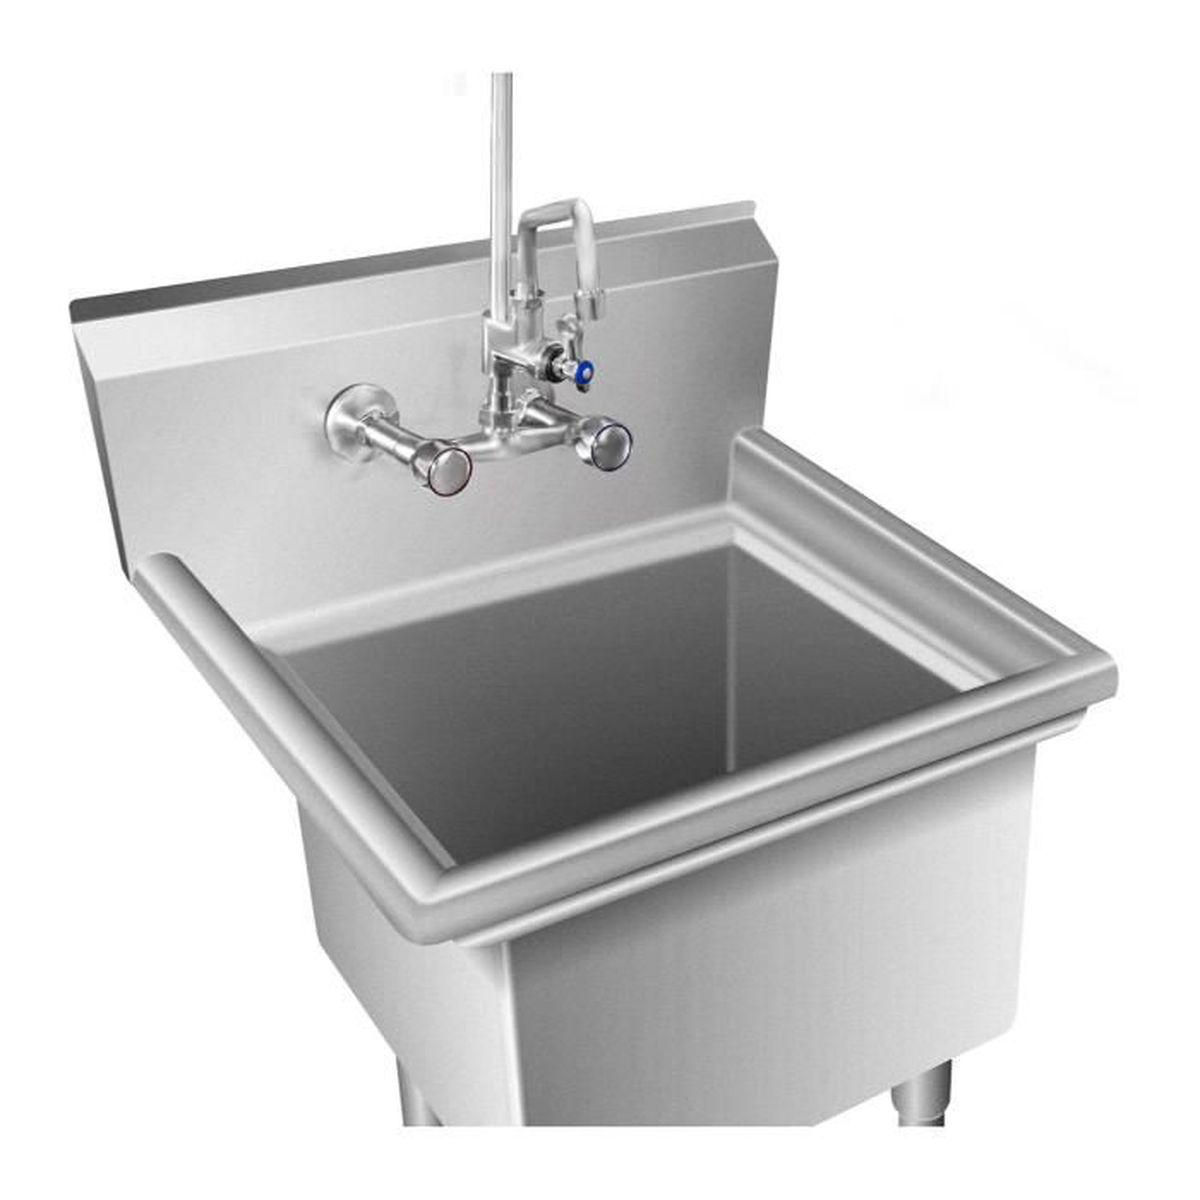 Evier chambord top ordinaire evier d angle cuisine for Evier 2 bacs 110 cm